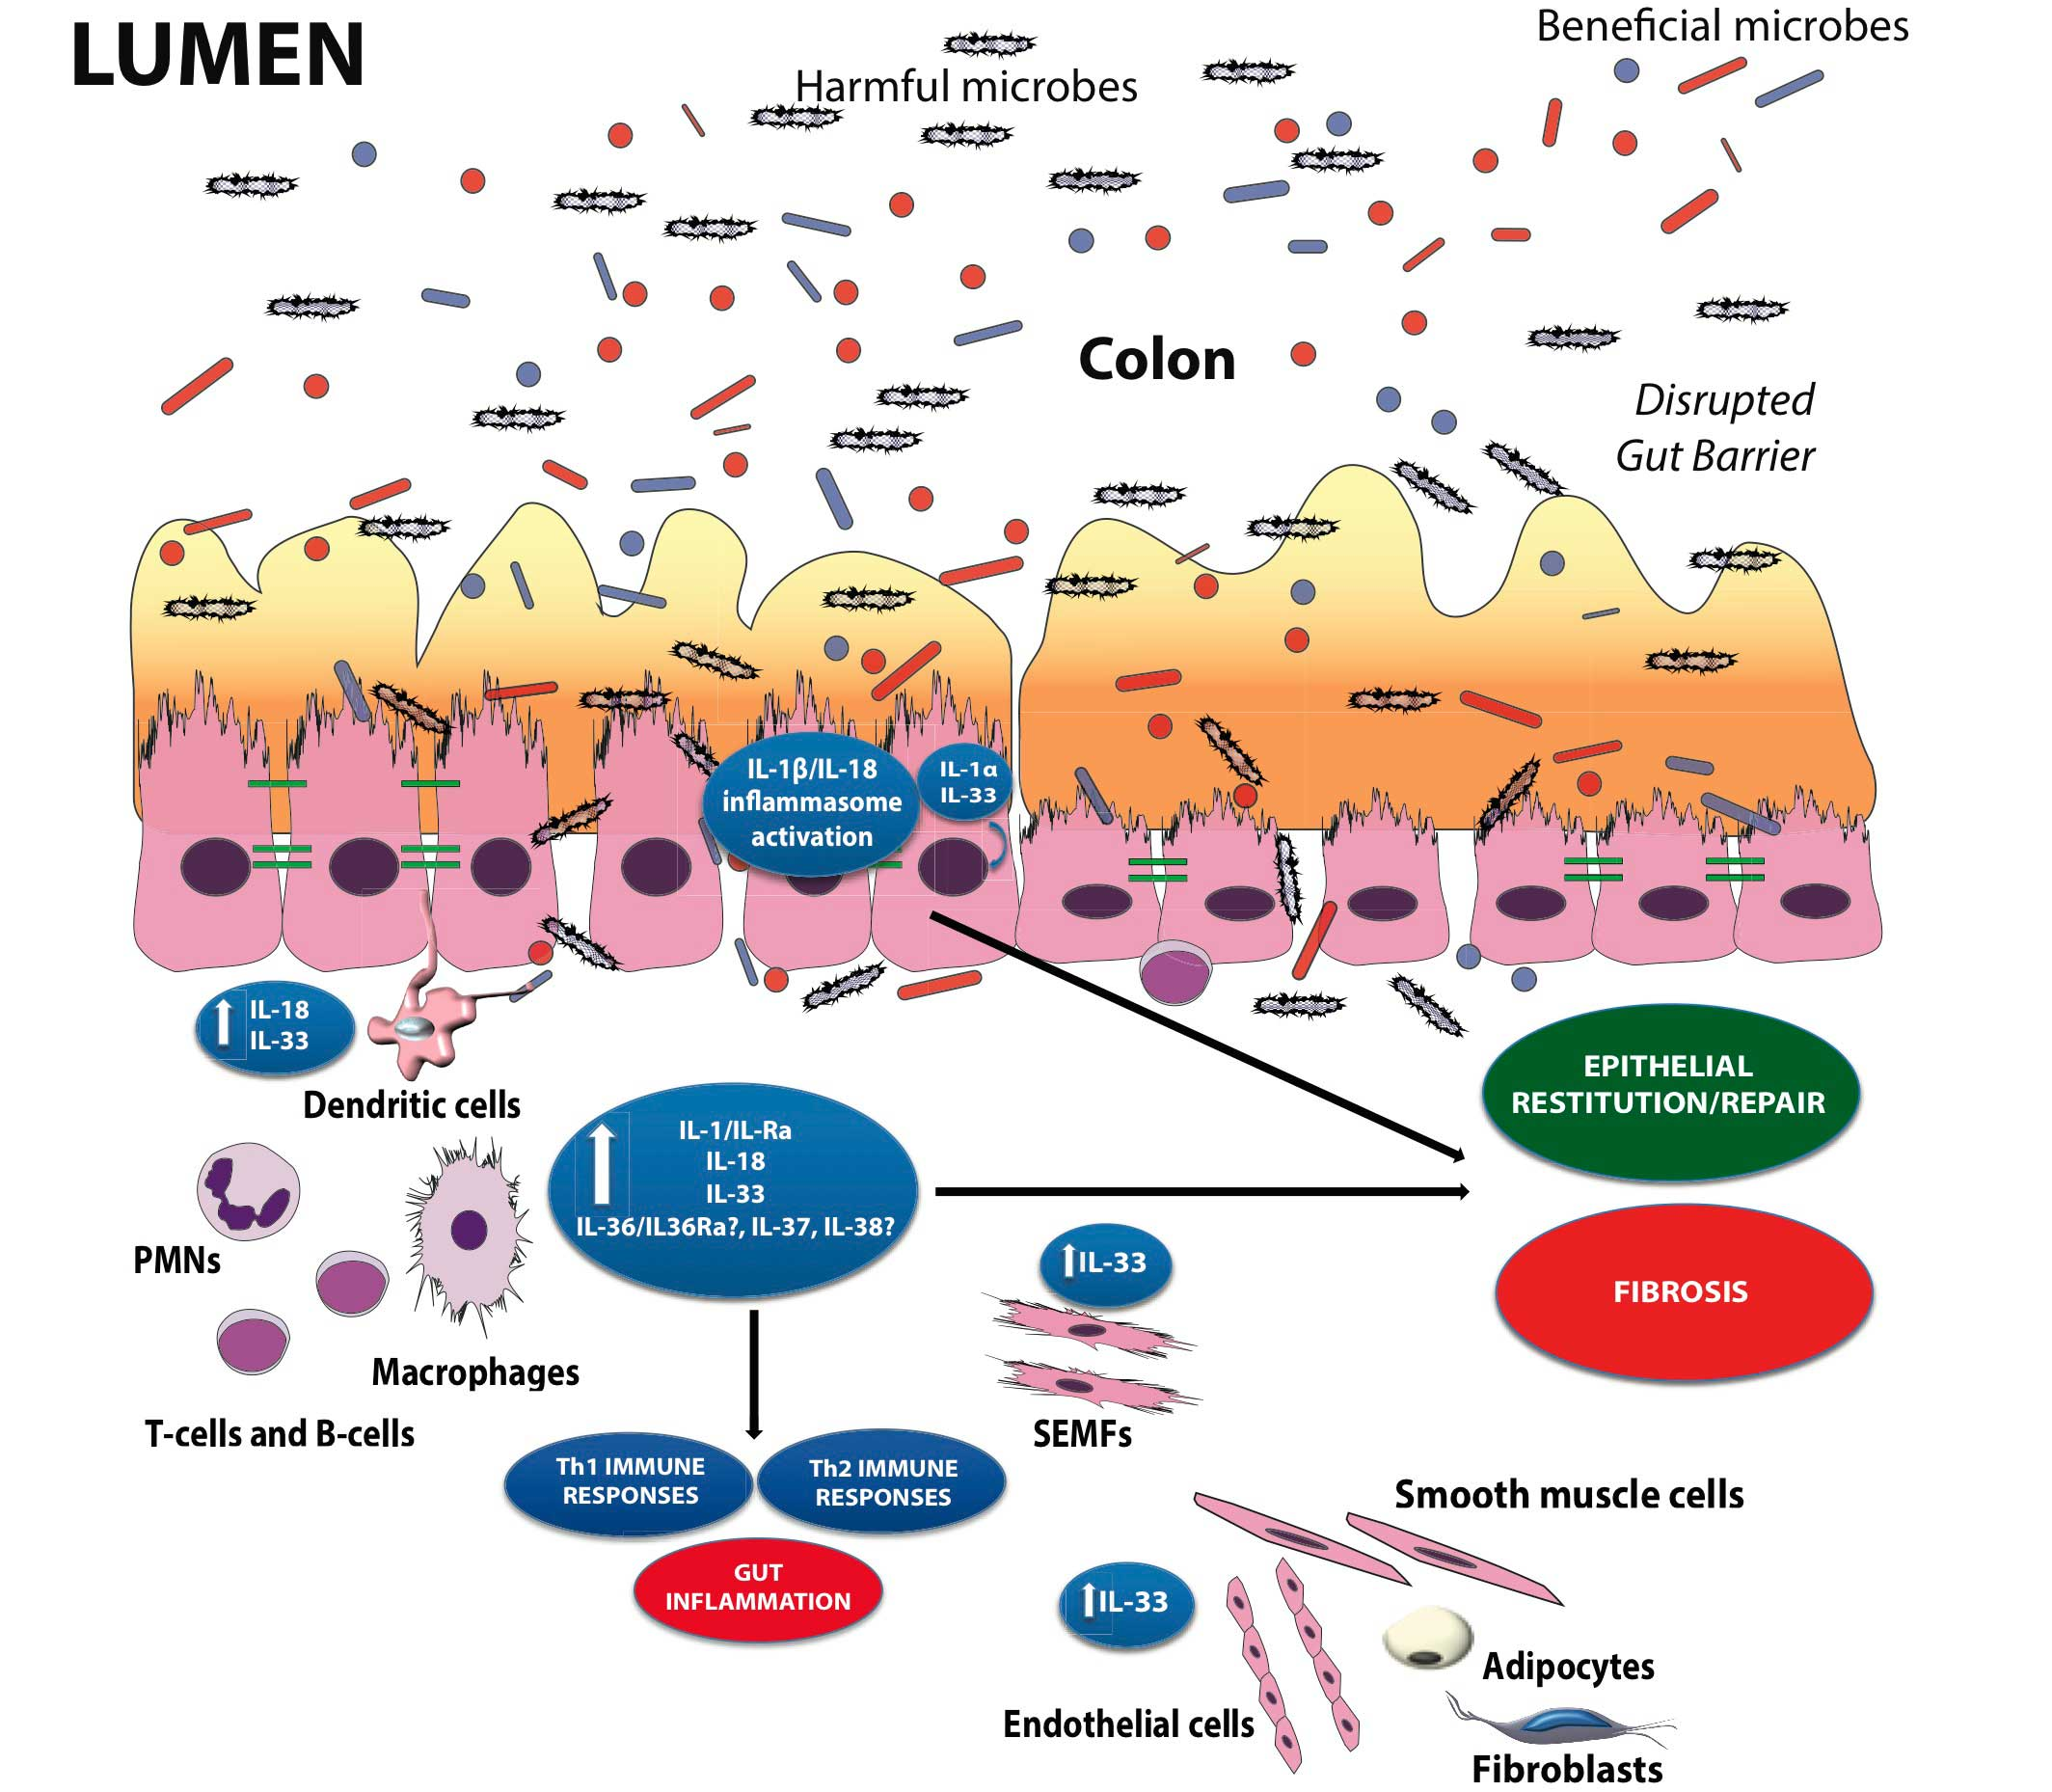 Immune System And Gastrointestinal >> Innate Immune Response And Gut Microbiota In Inflammatory Bowel